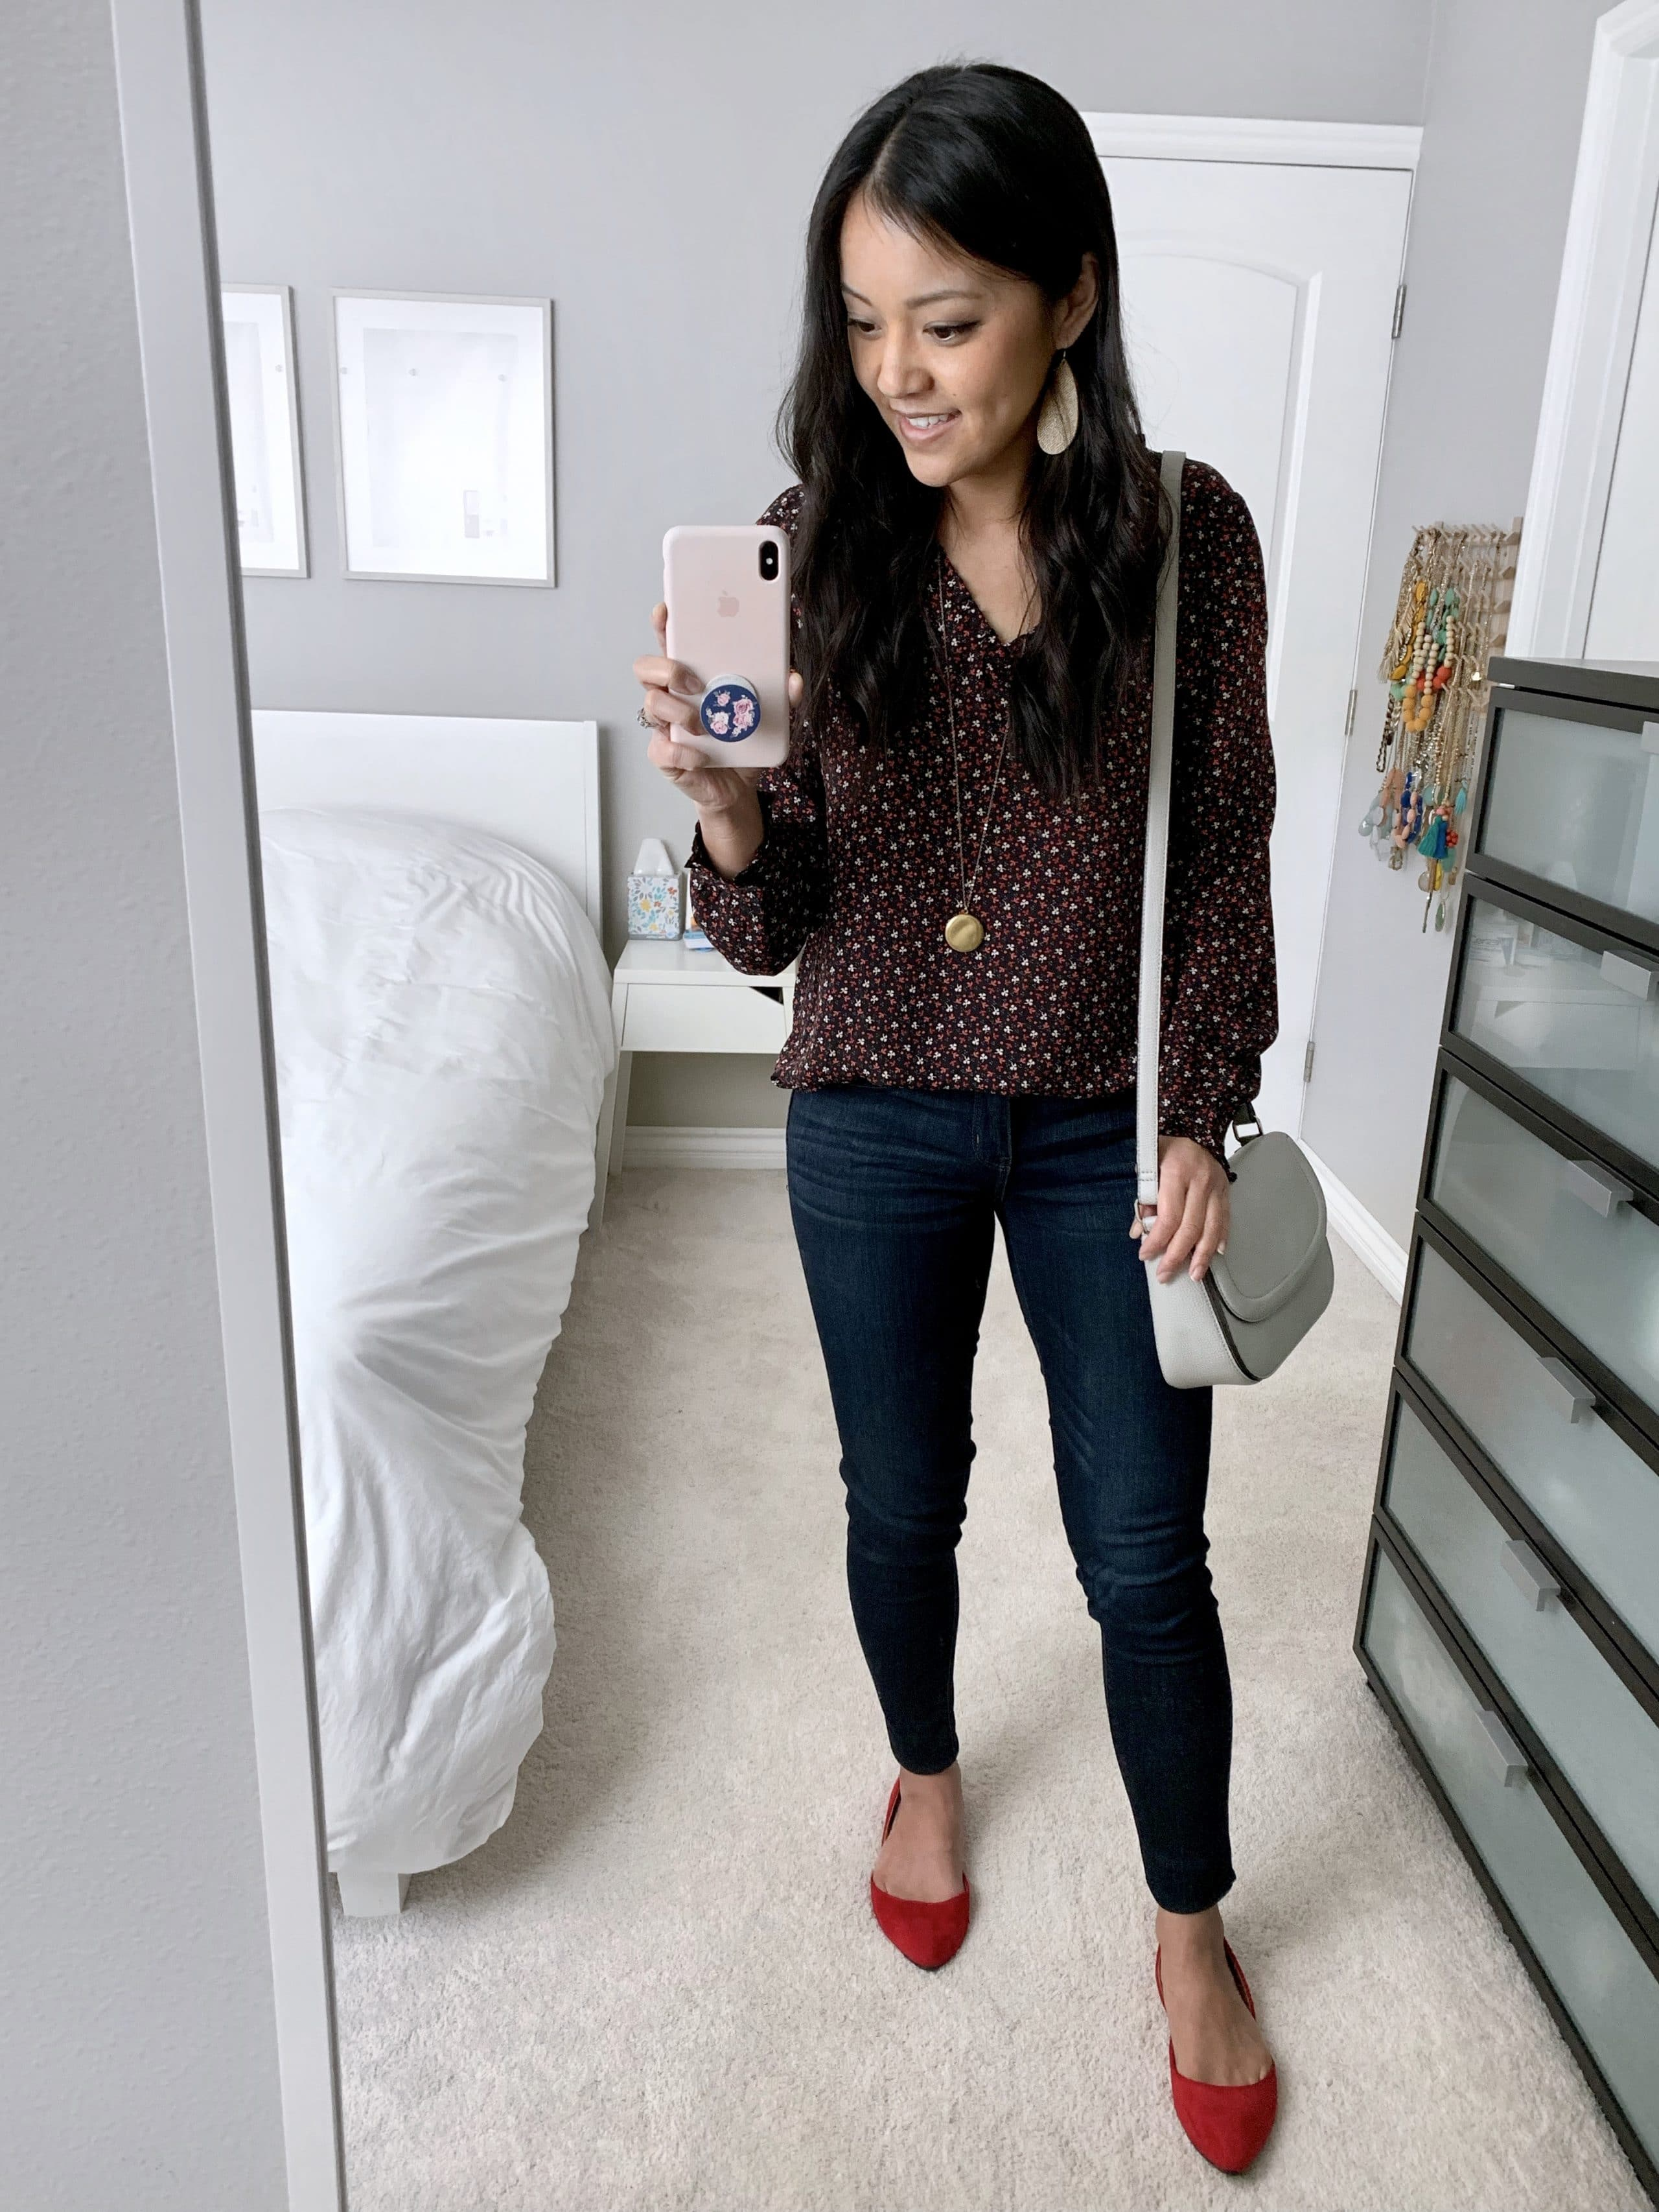 printed blouse + jeans + red flats for polished casual outfit